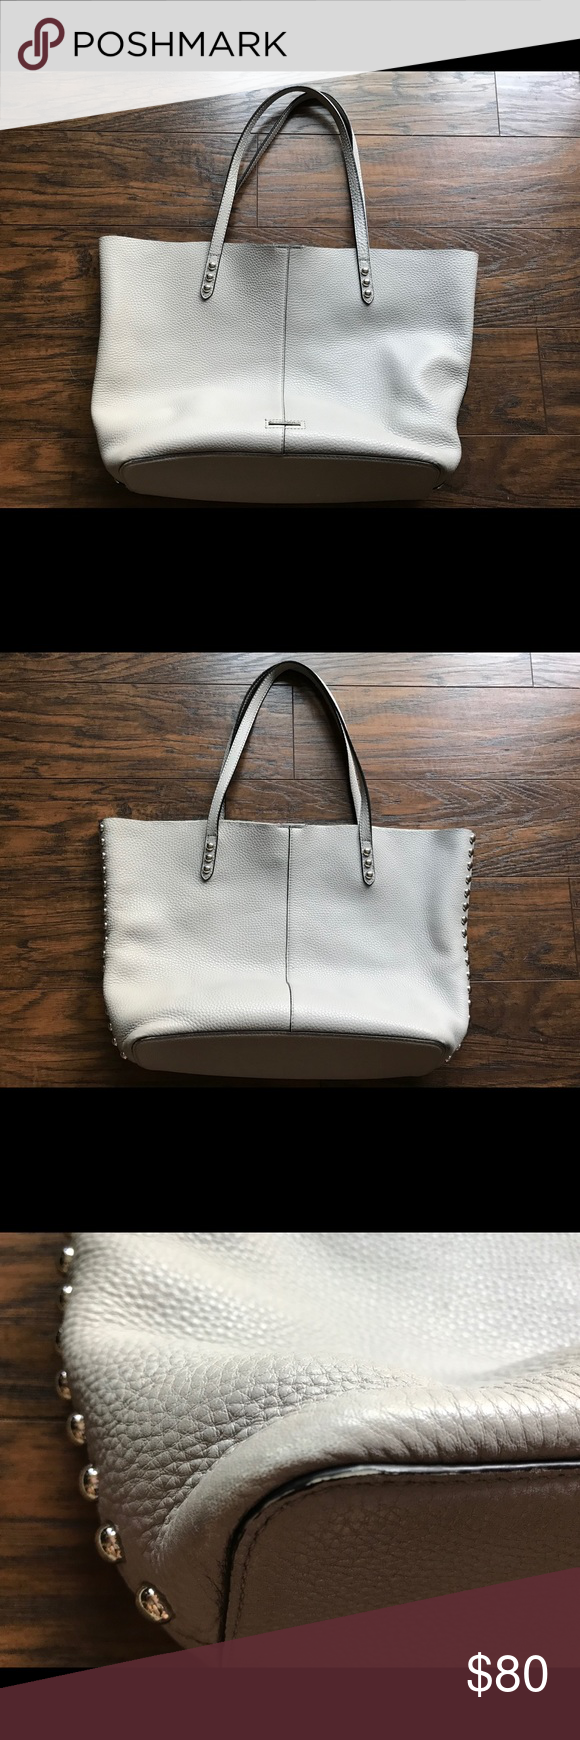 71deae143 Rebecca Minkoff Putty Unlined Tote w/ Dome Studs Gently used Rebecca  Minkoff tote with silver